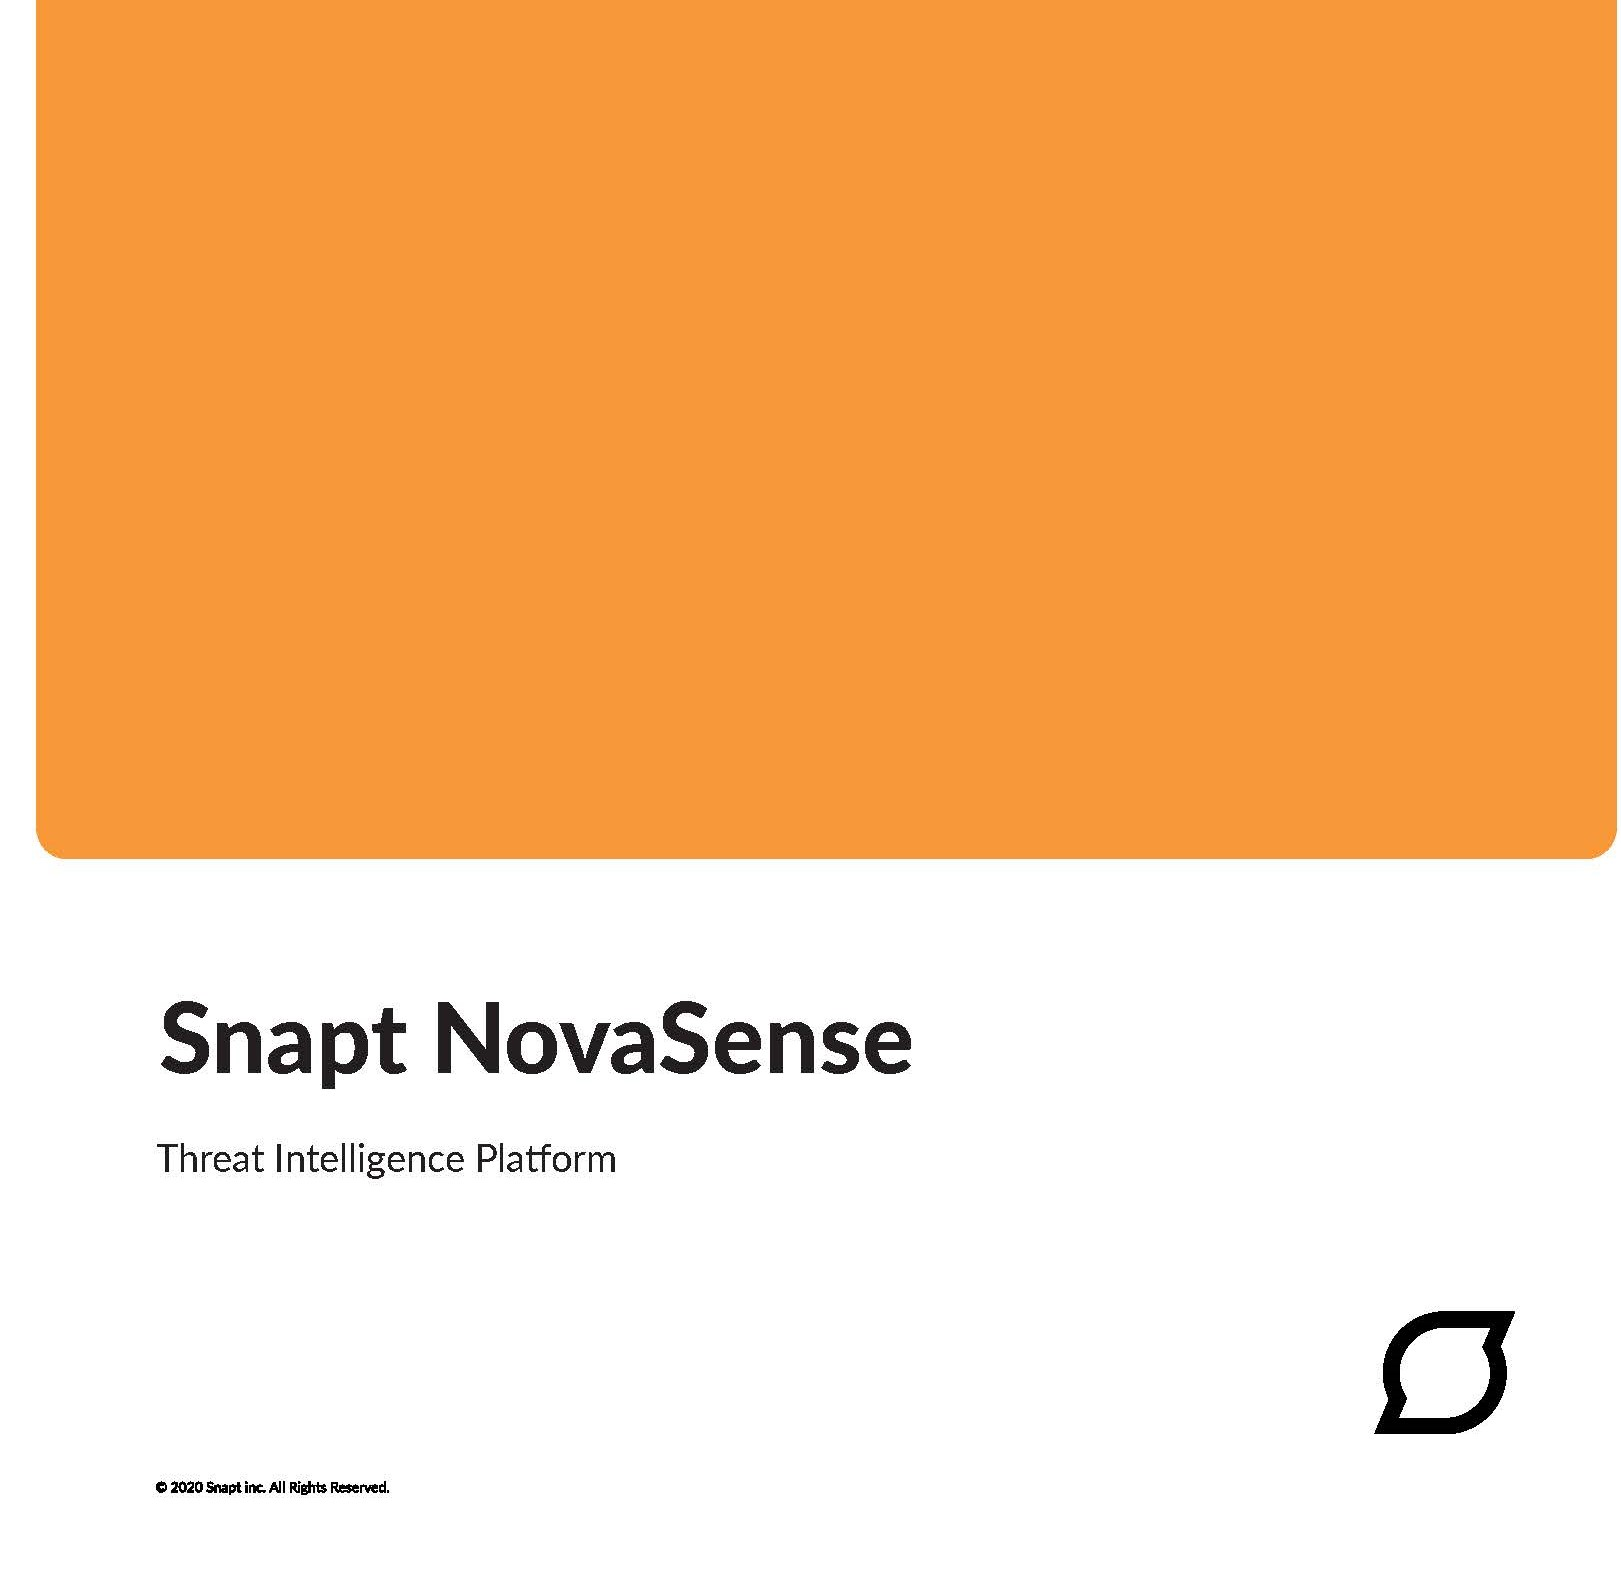 snapt-datasheet-novasense-threat-intelligence- new_Page_1-cropped